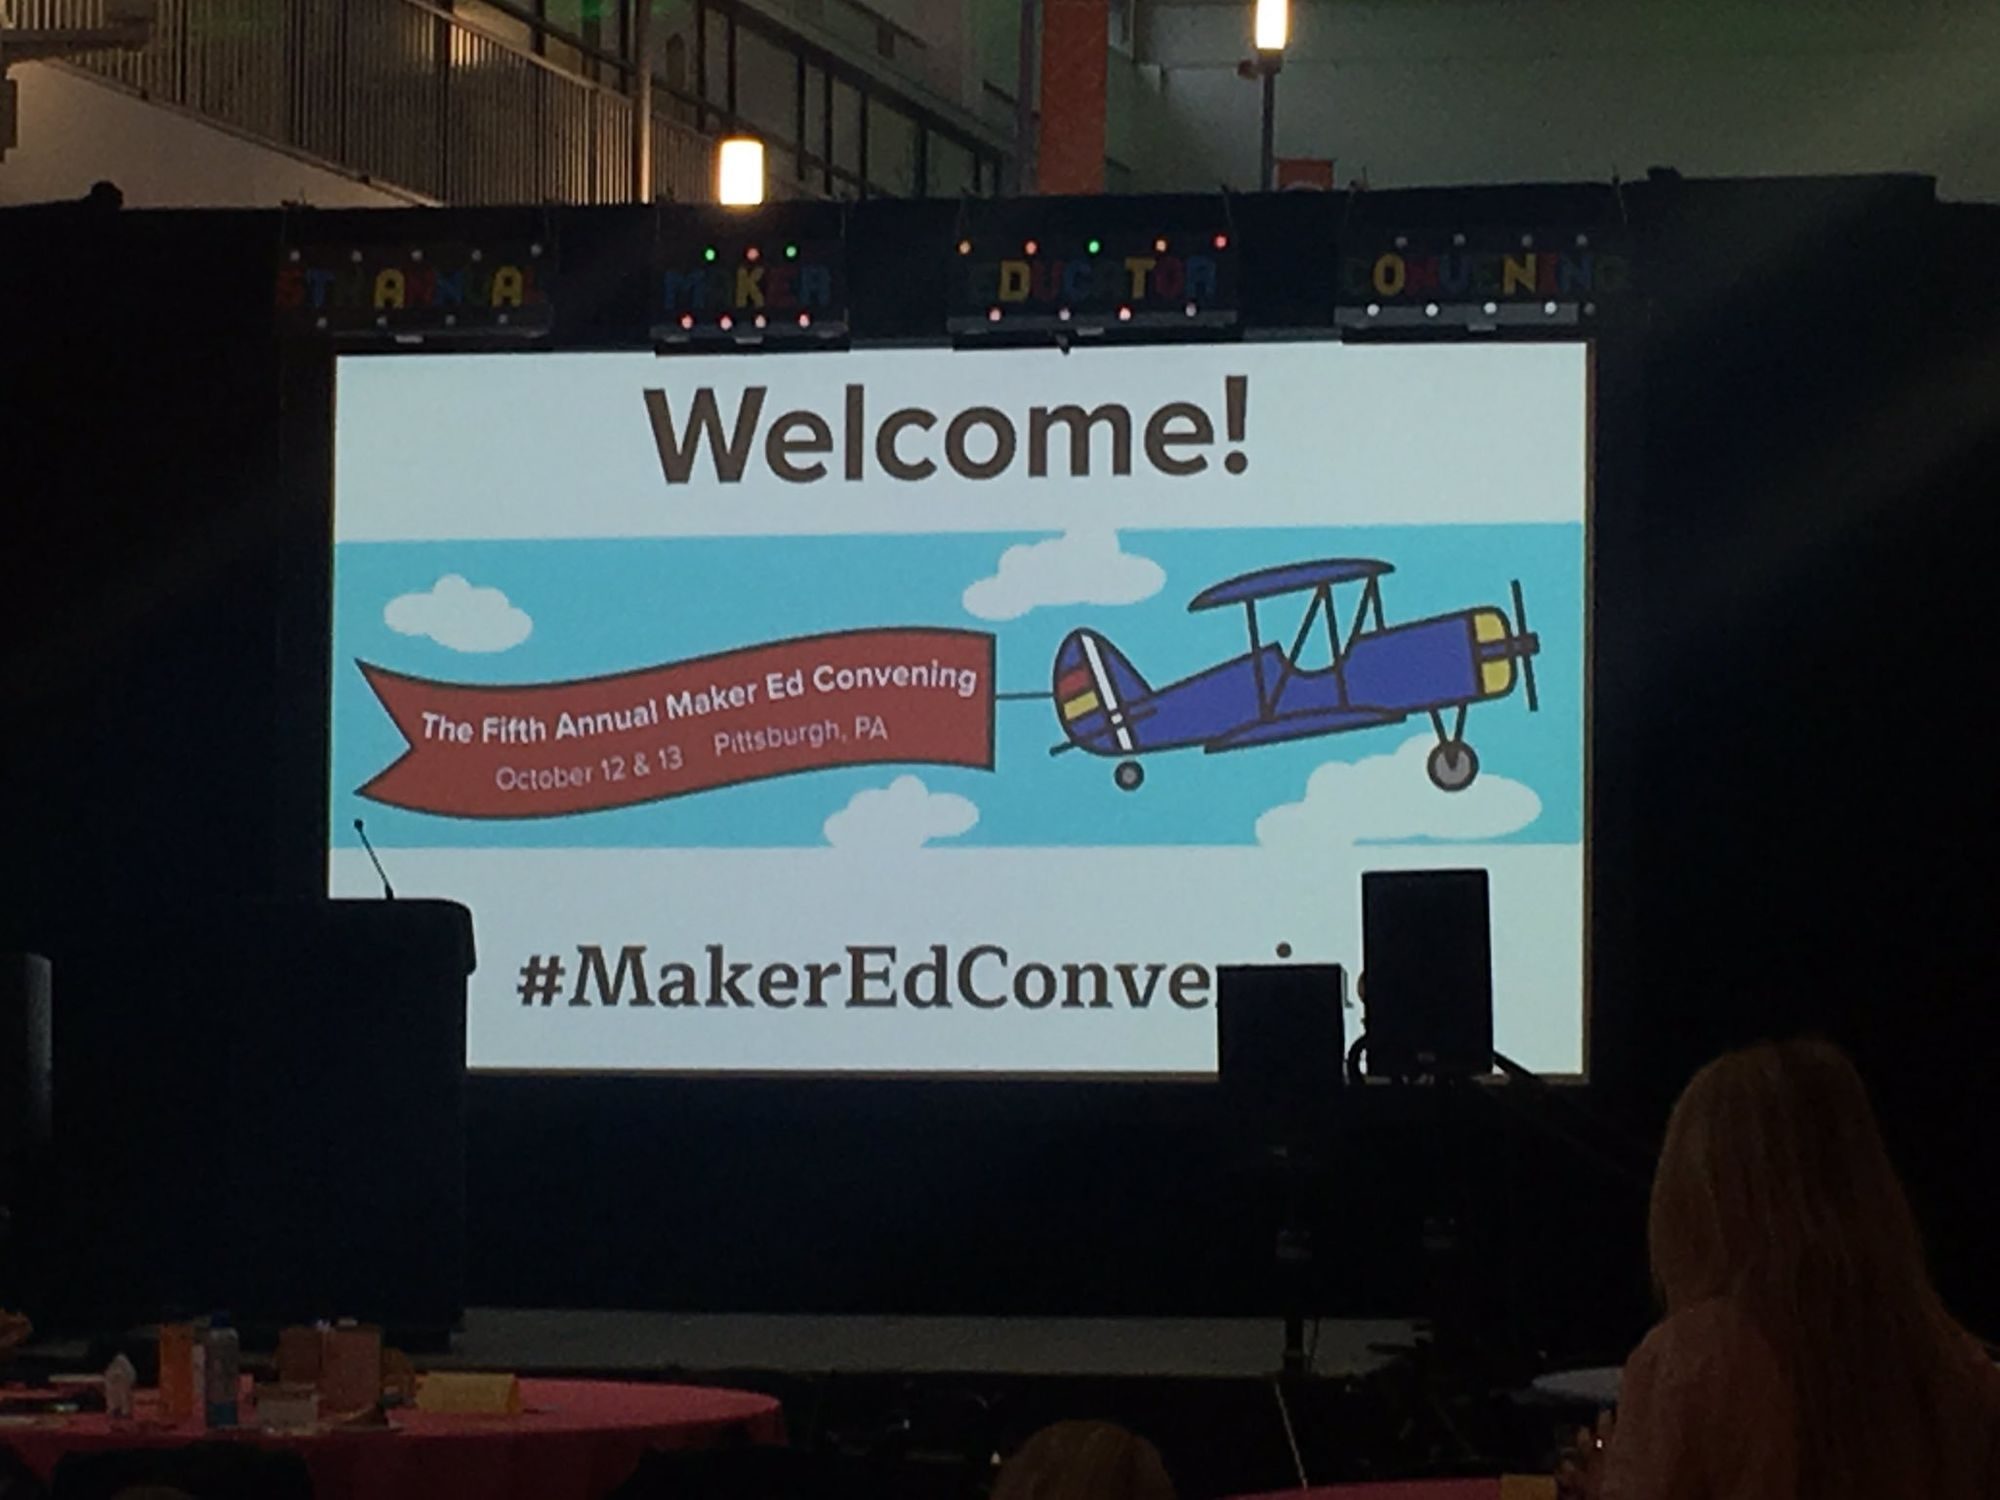 5th Annual MakerED Convening @Pittsburgh PA